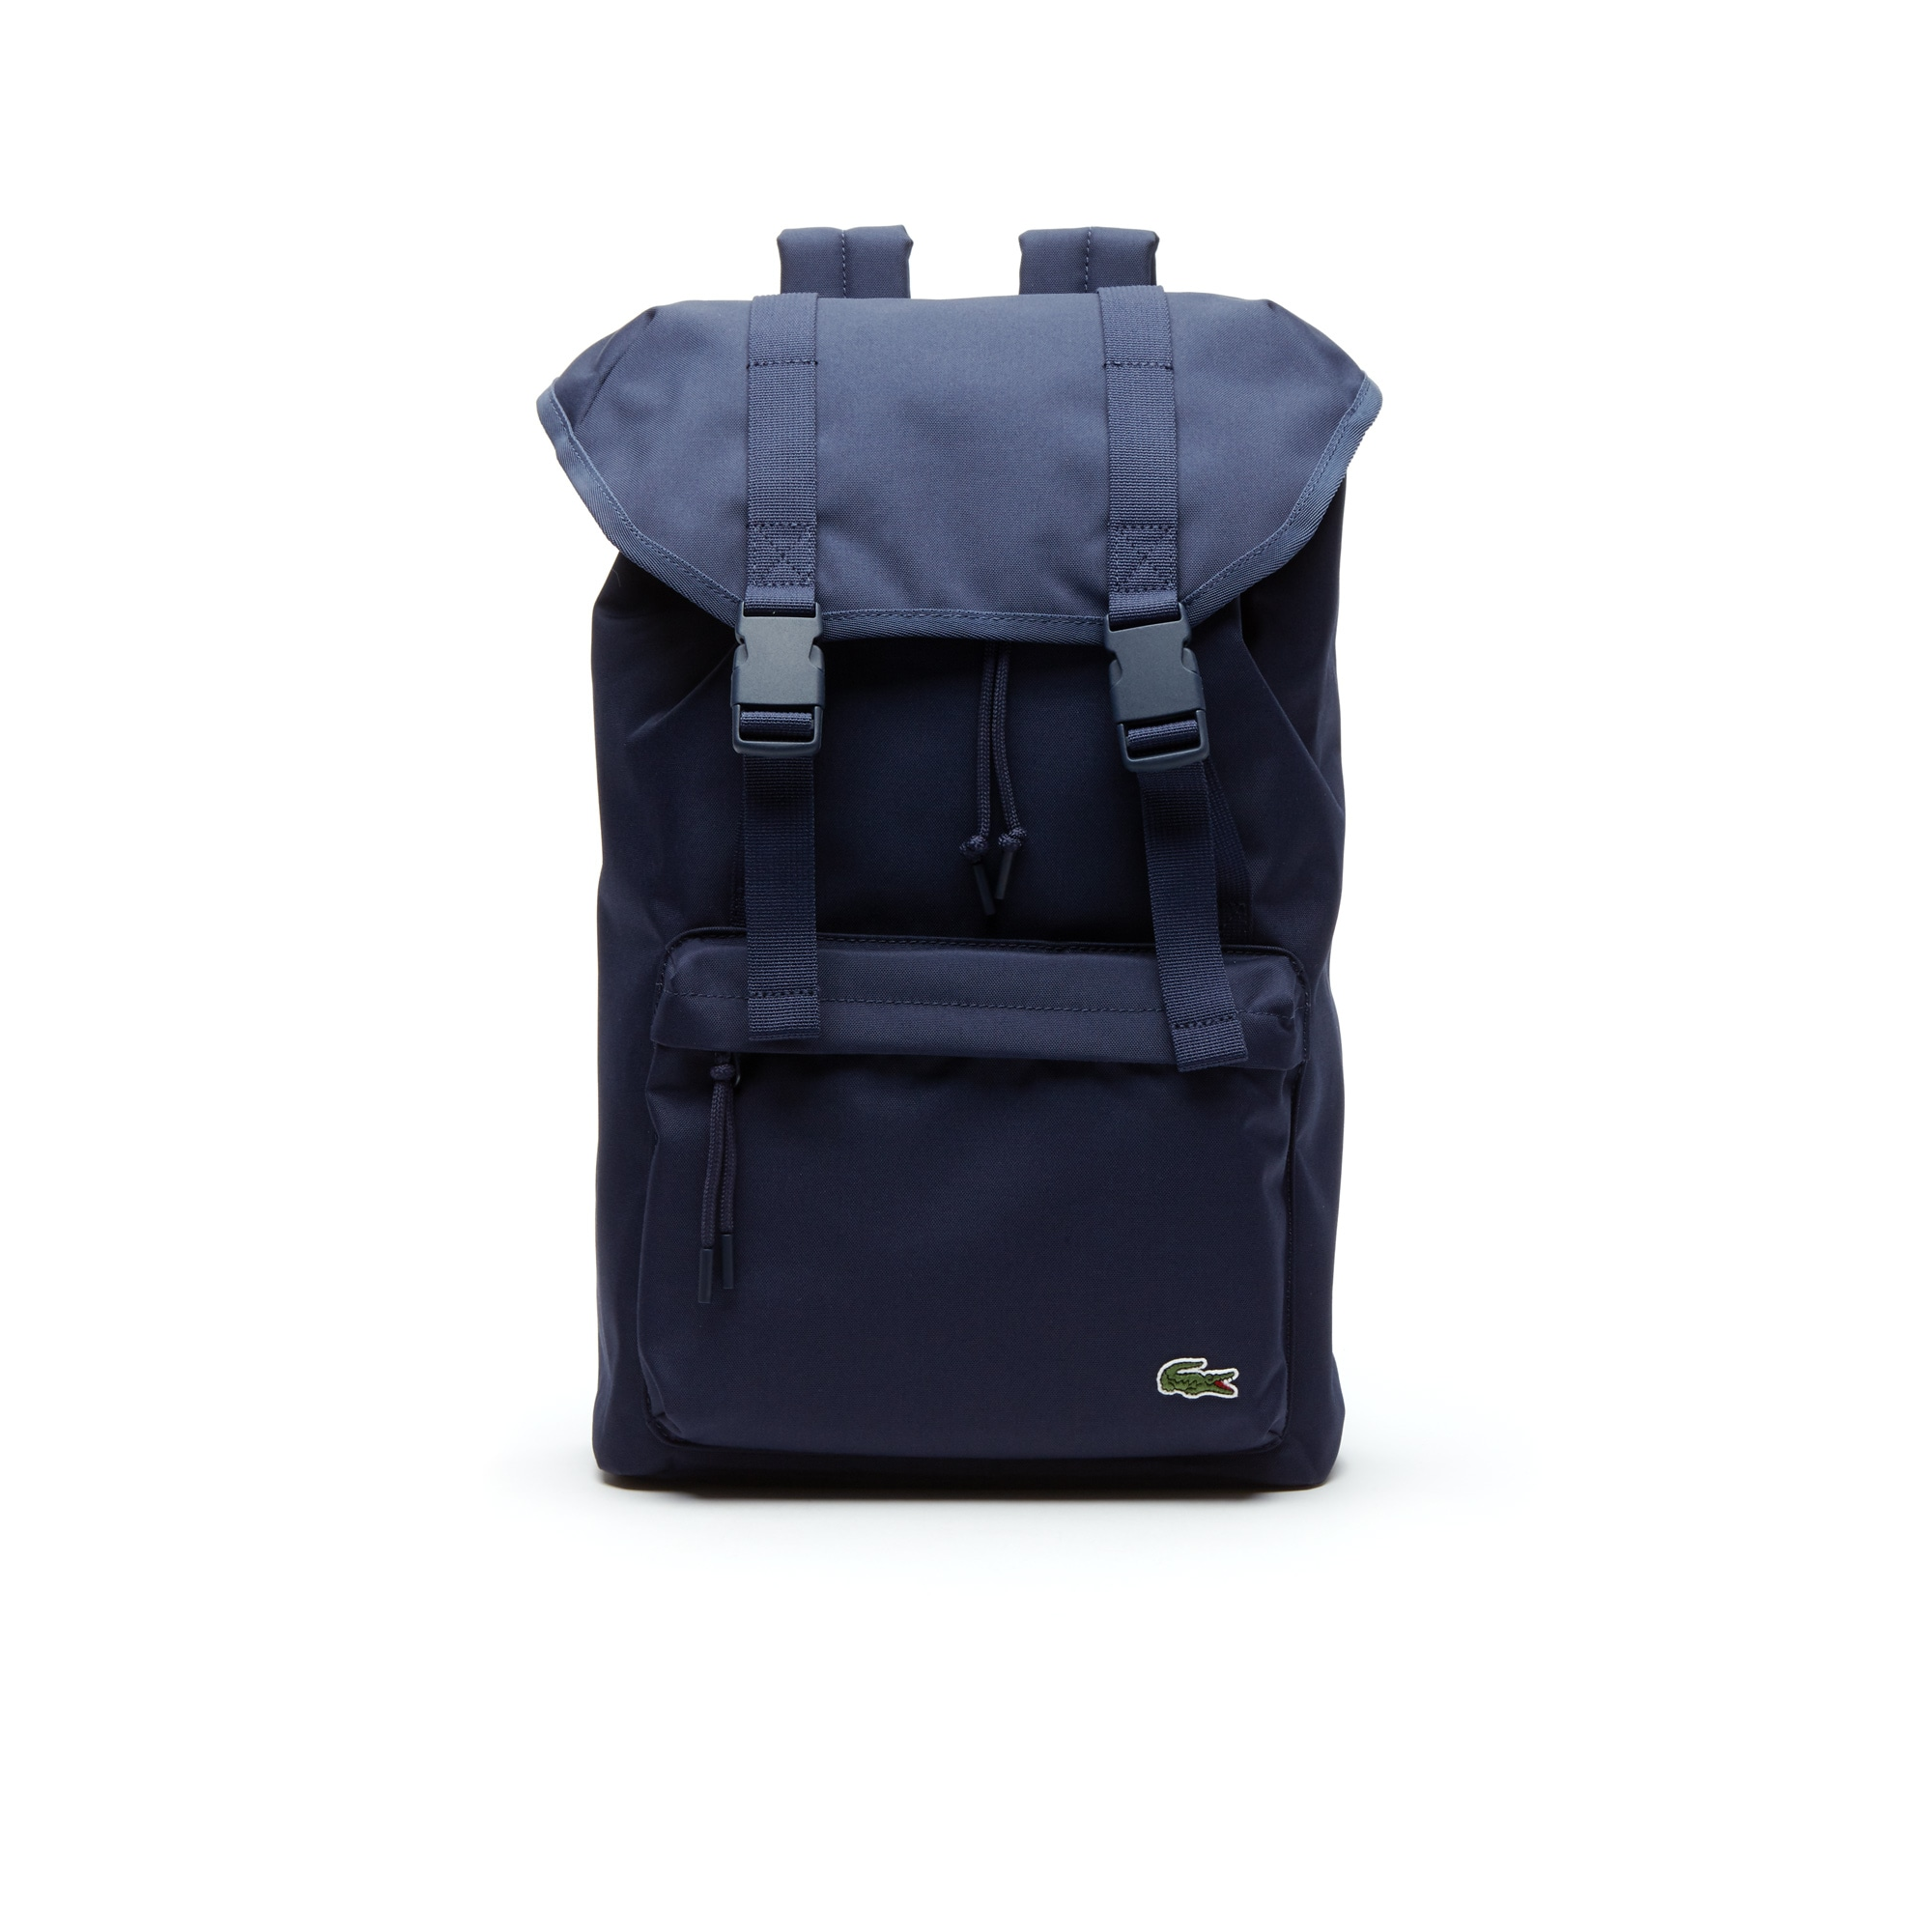 Men's Néocroc Monochrome Canvas Flap Backpack